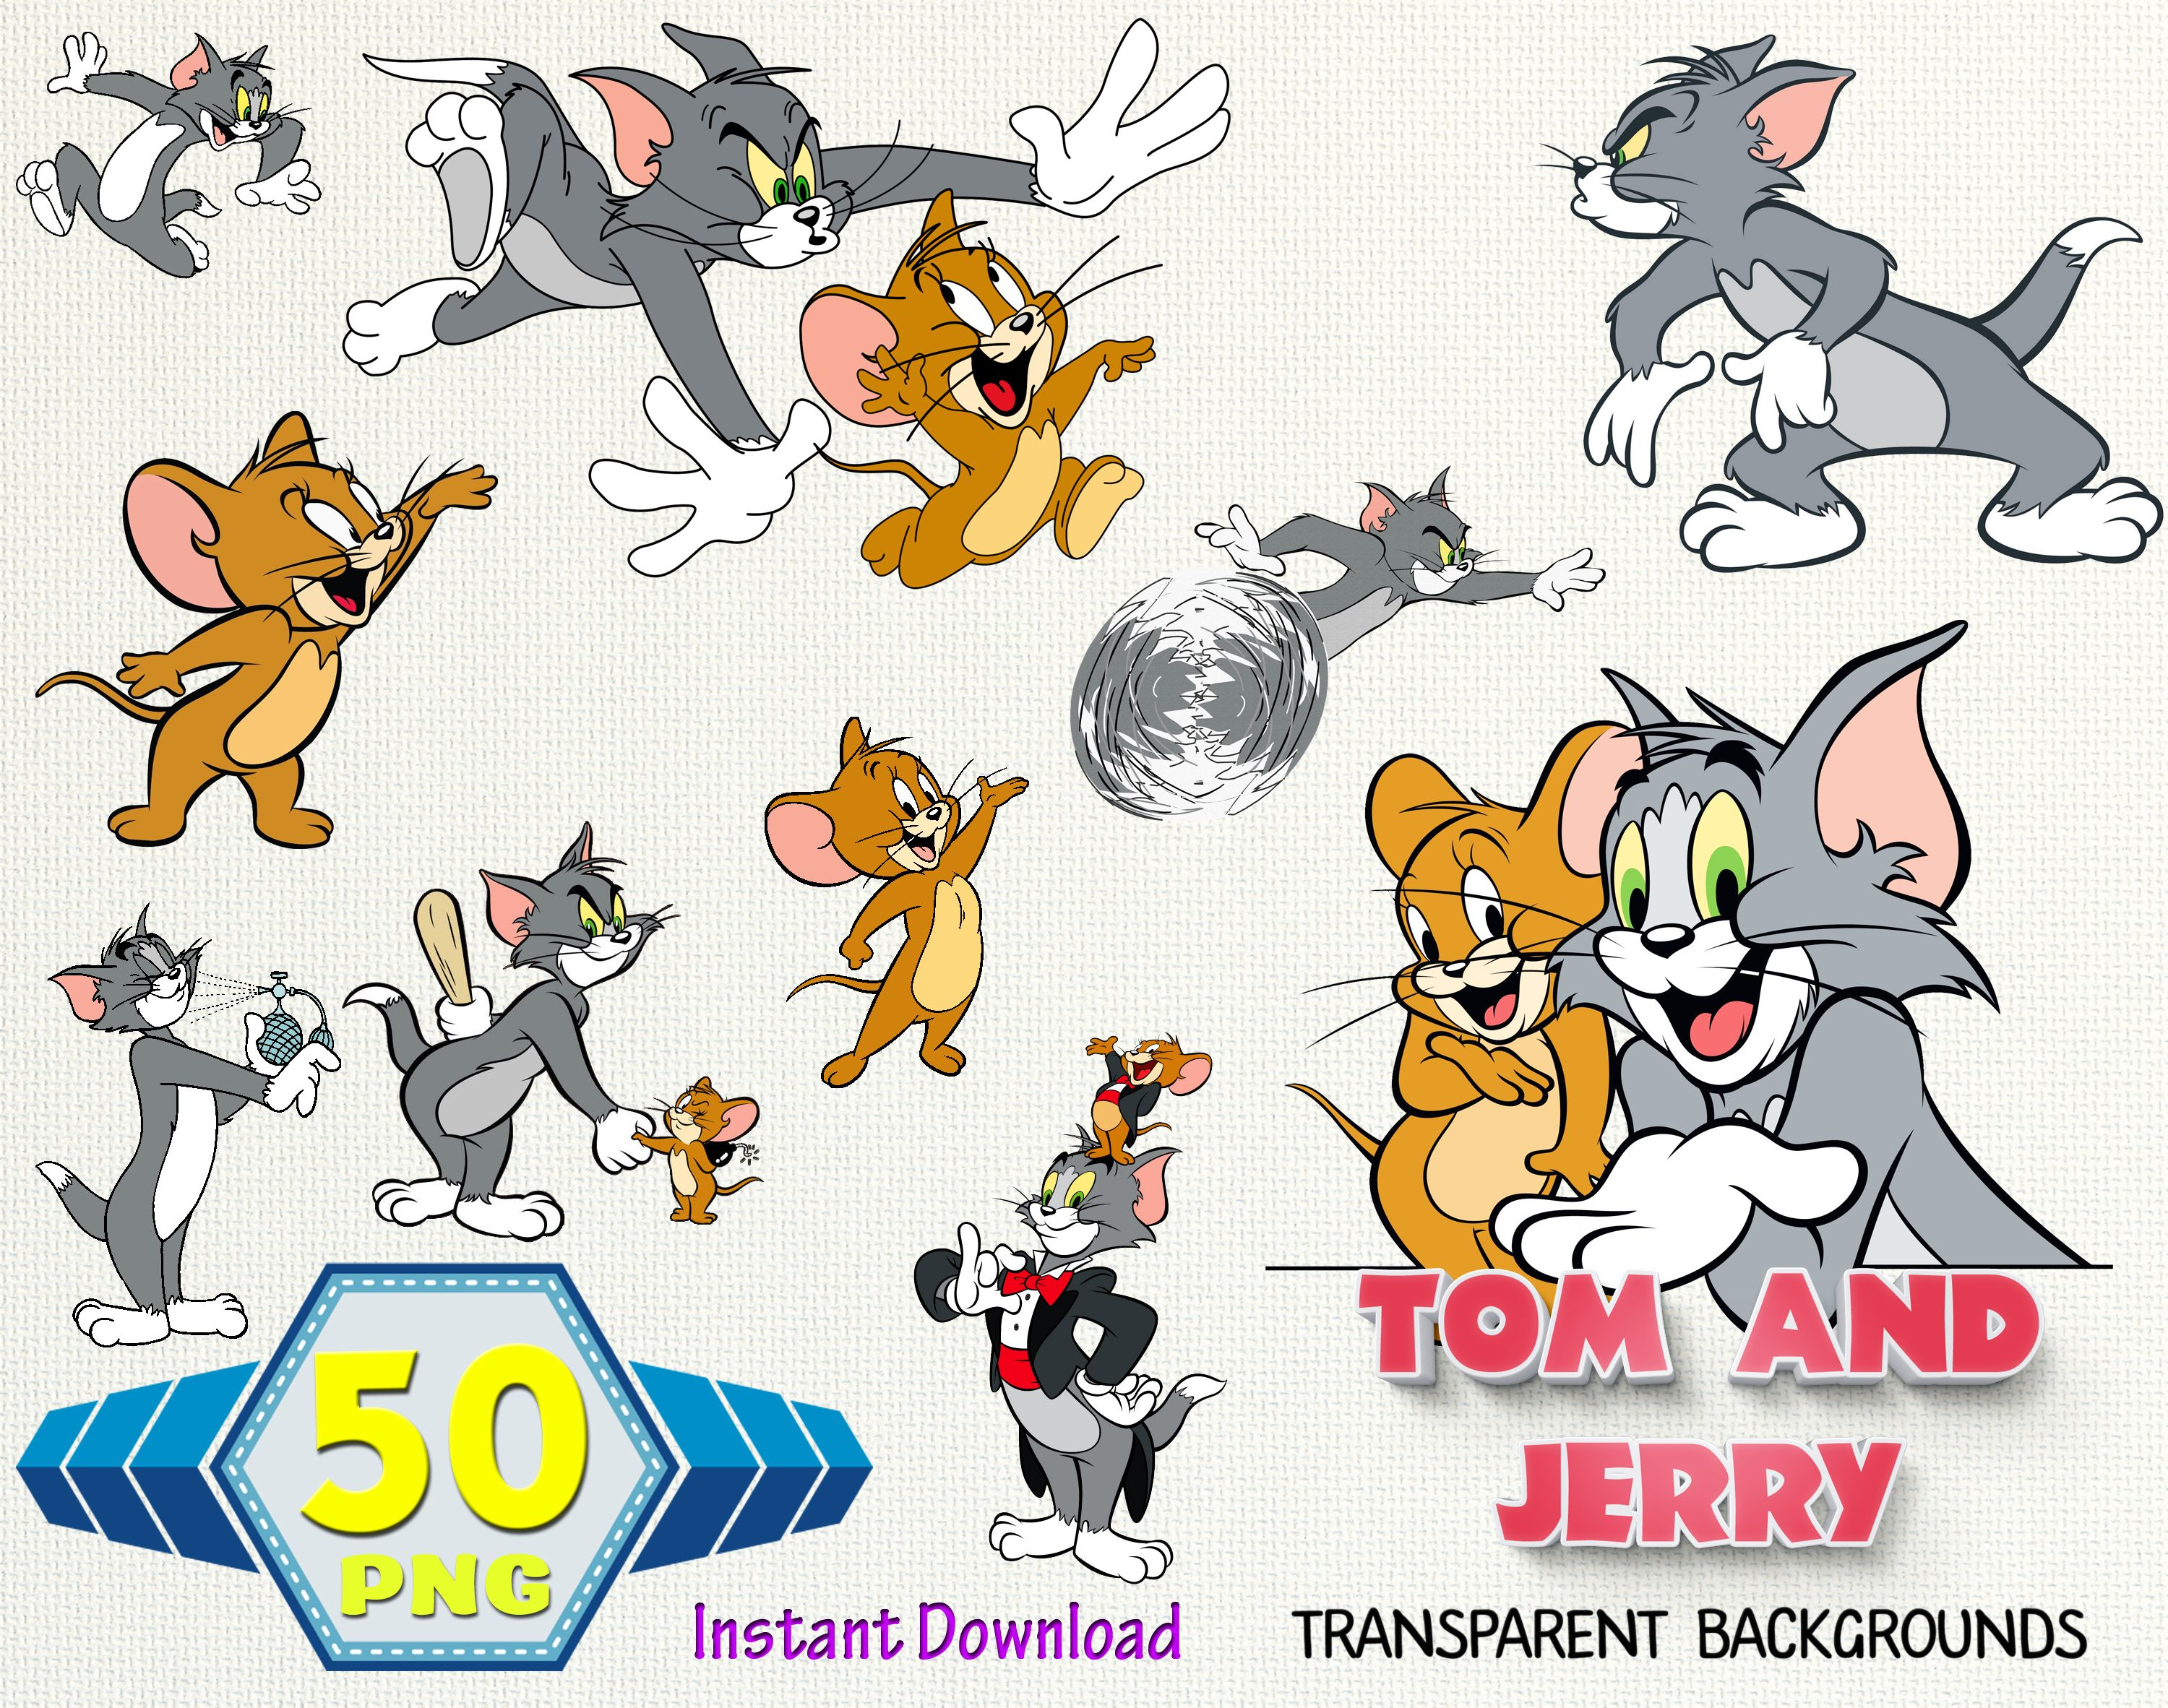 TOM AND JERRY clipart tom and jerry Images tom and jerry